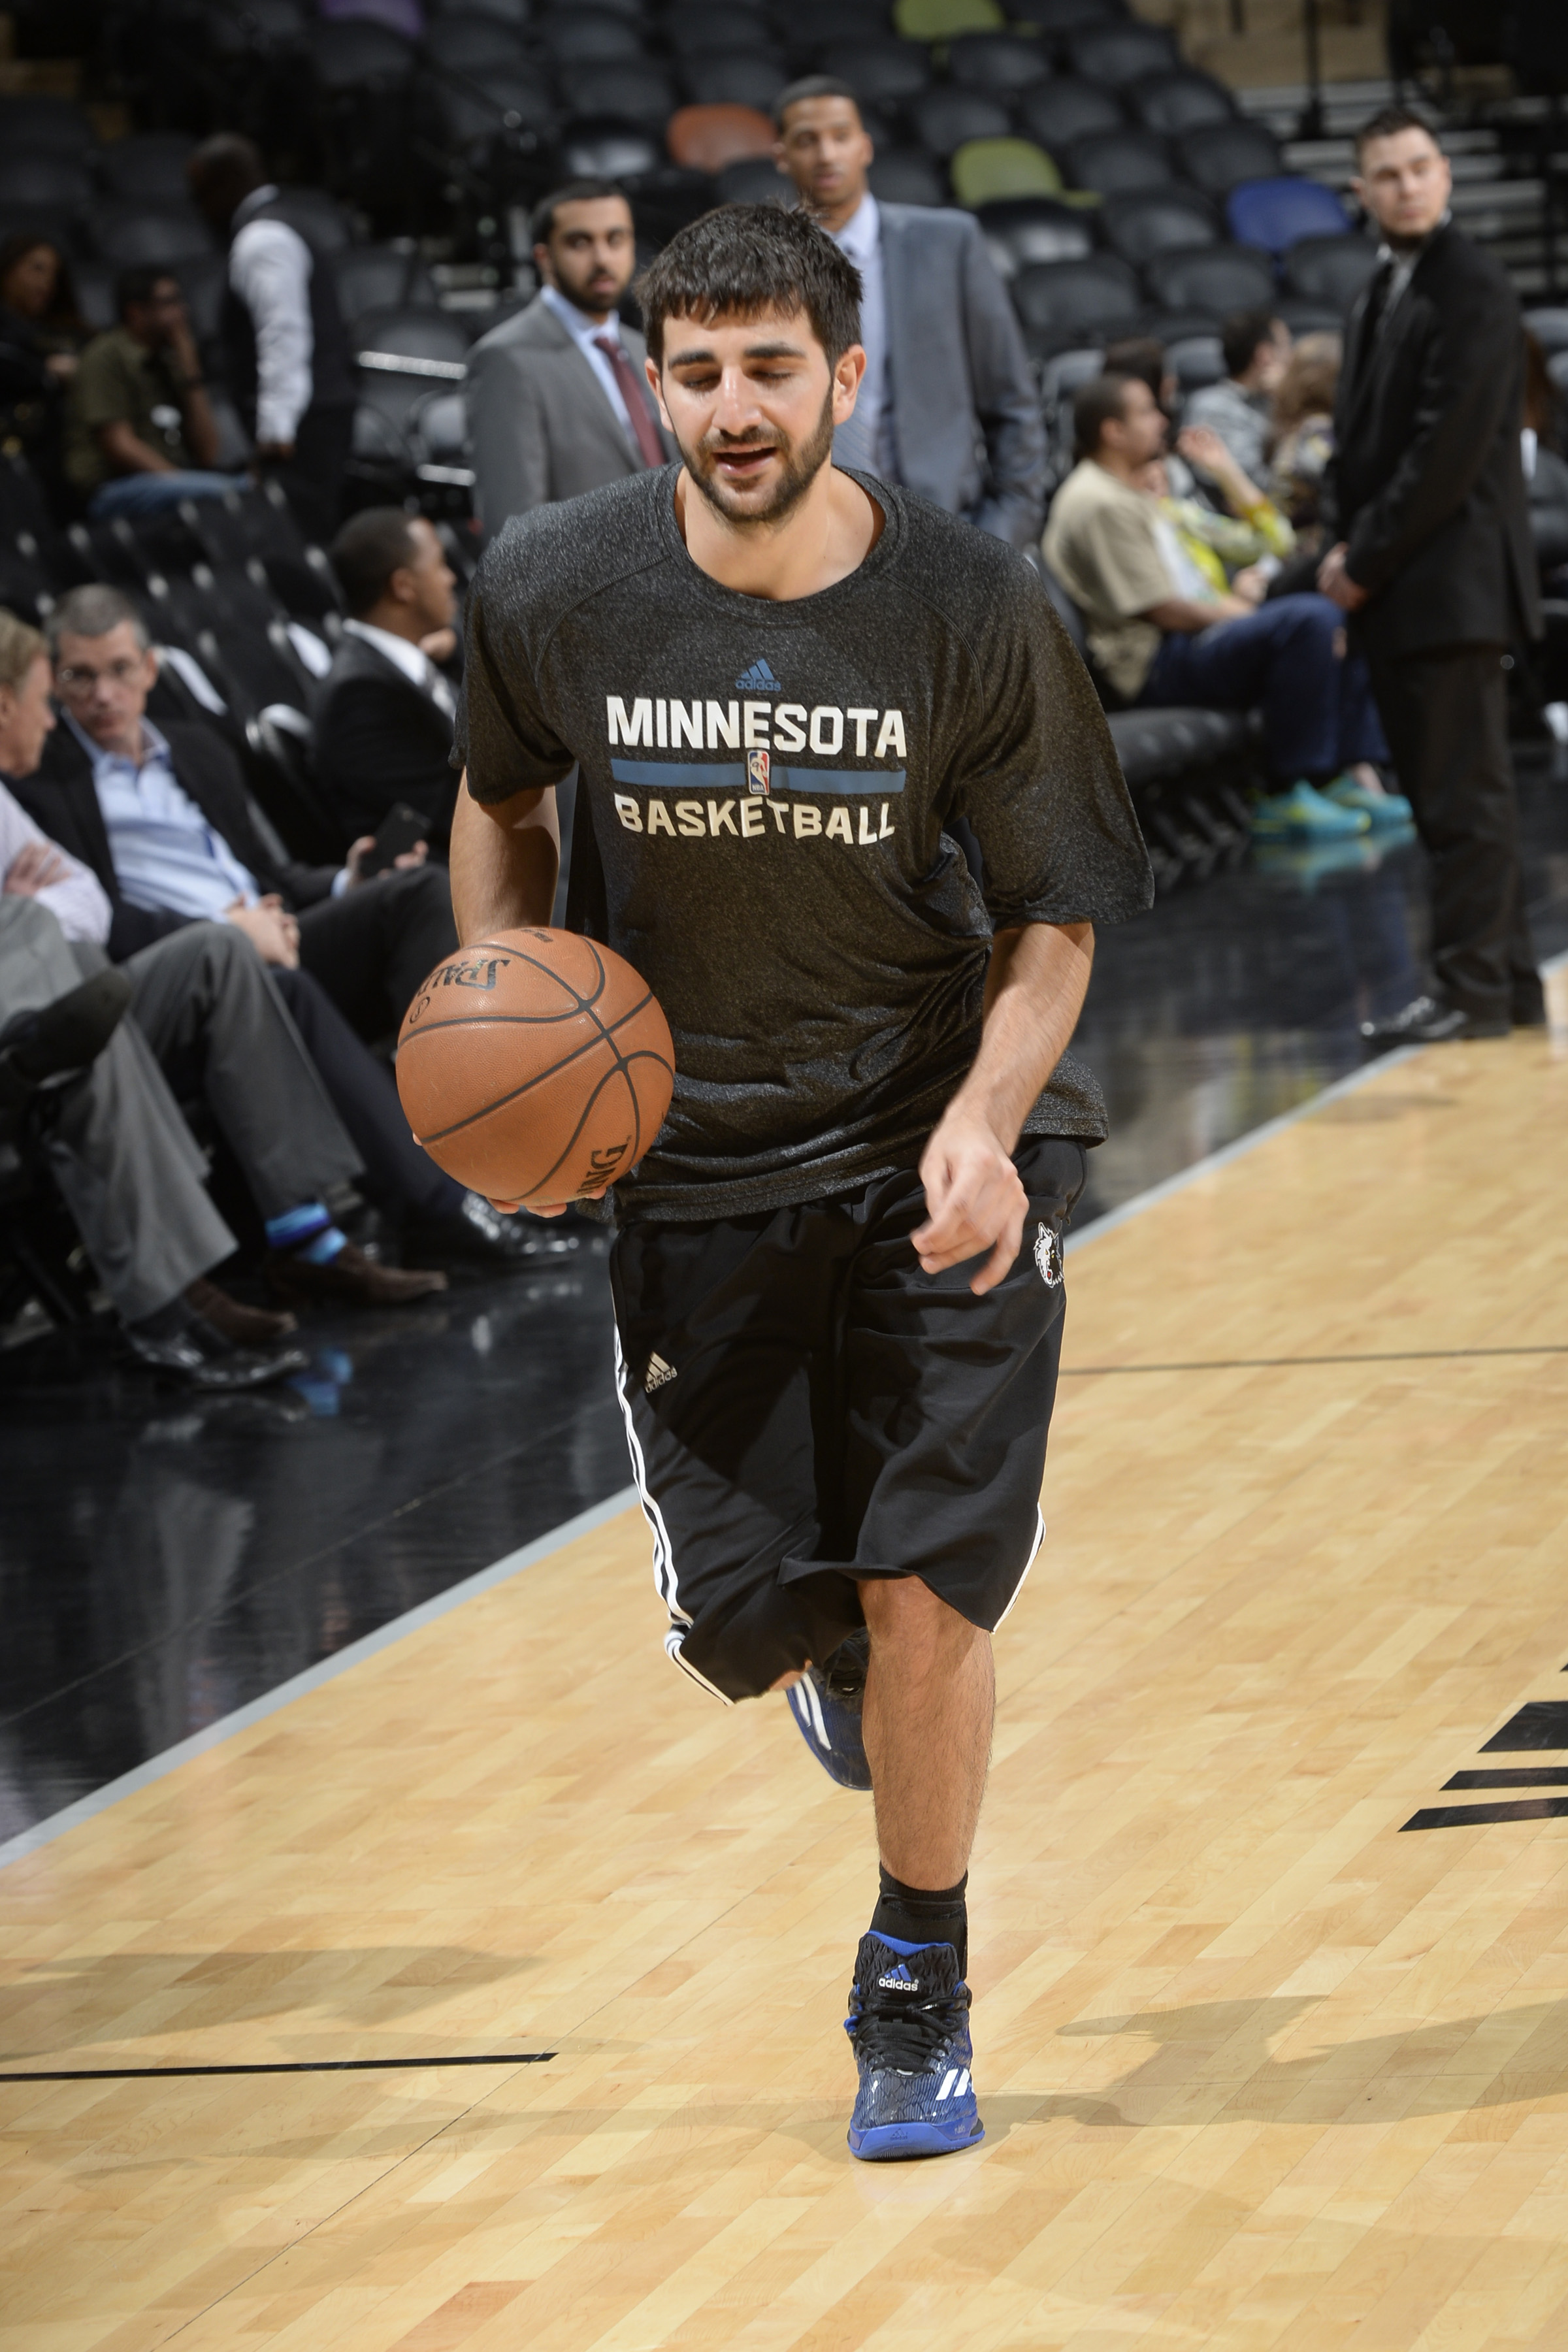 SAN ANTONIO, TX - MARCH 15:  Ricky Rubio #9 of the Minnesota Timberwolves warms up before the game against the San Antonio Spurs on March 15, 2015 at the AT&T Center in San Antonio, Texas. (Photo by D. Clarke Evans/NBAE via Getty Images)